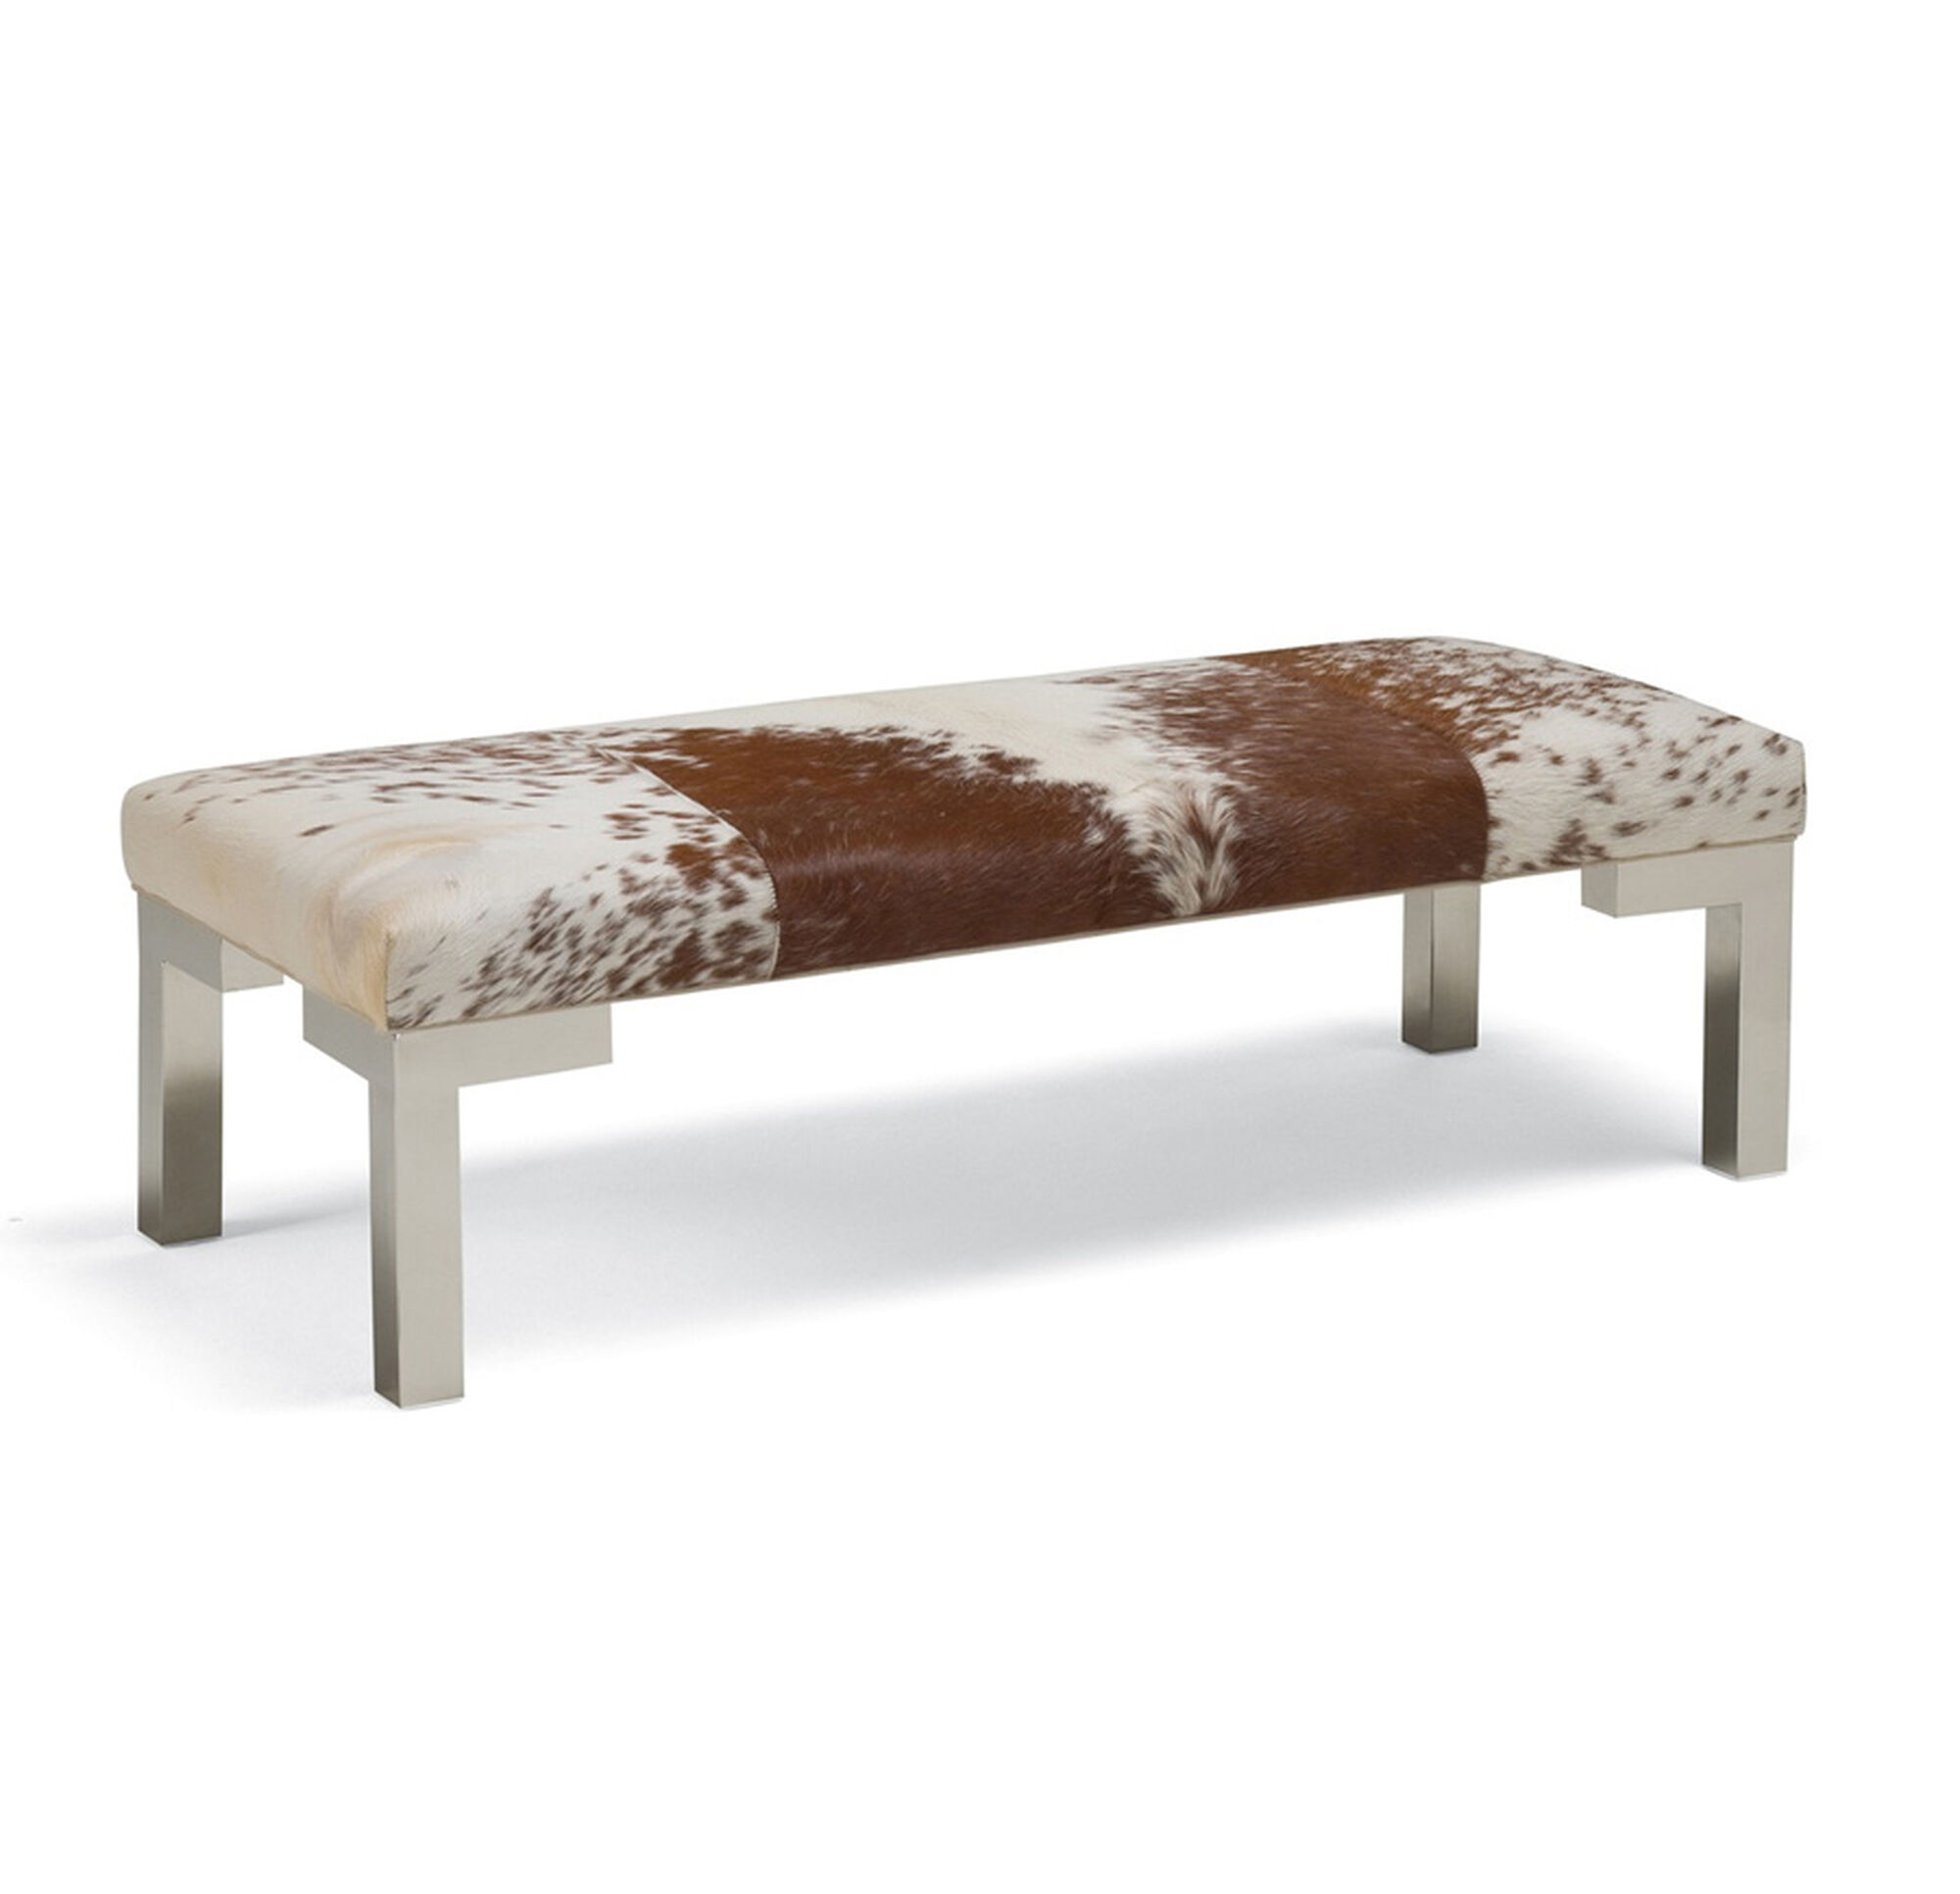 WINSTON LEATHER BENCH OTTOMAN